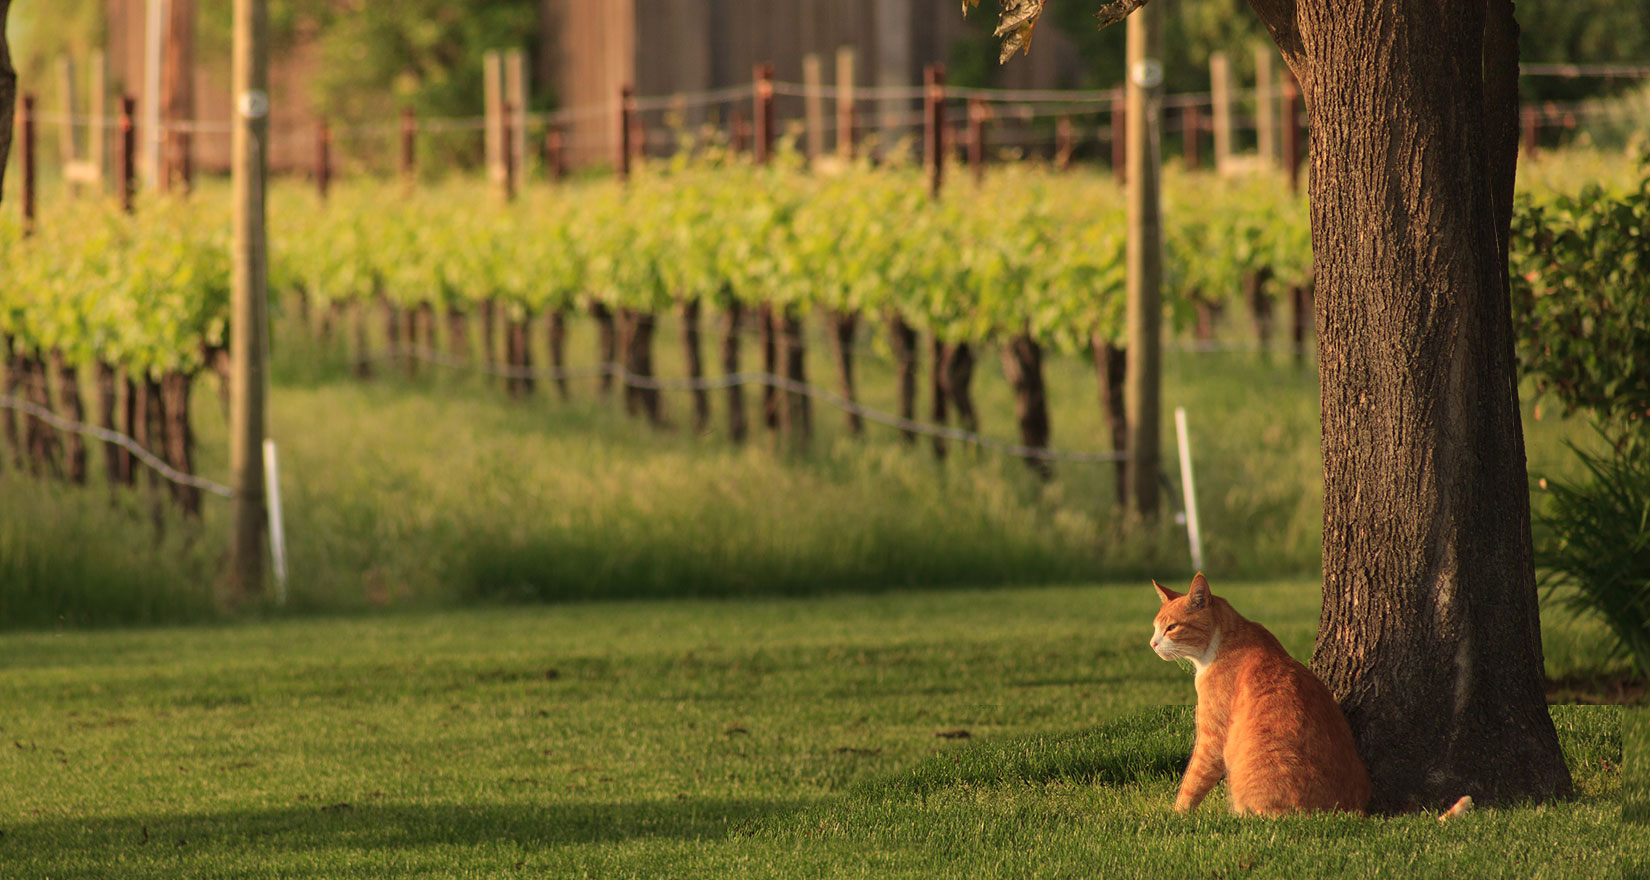 Cat in vineyard